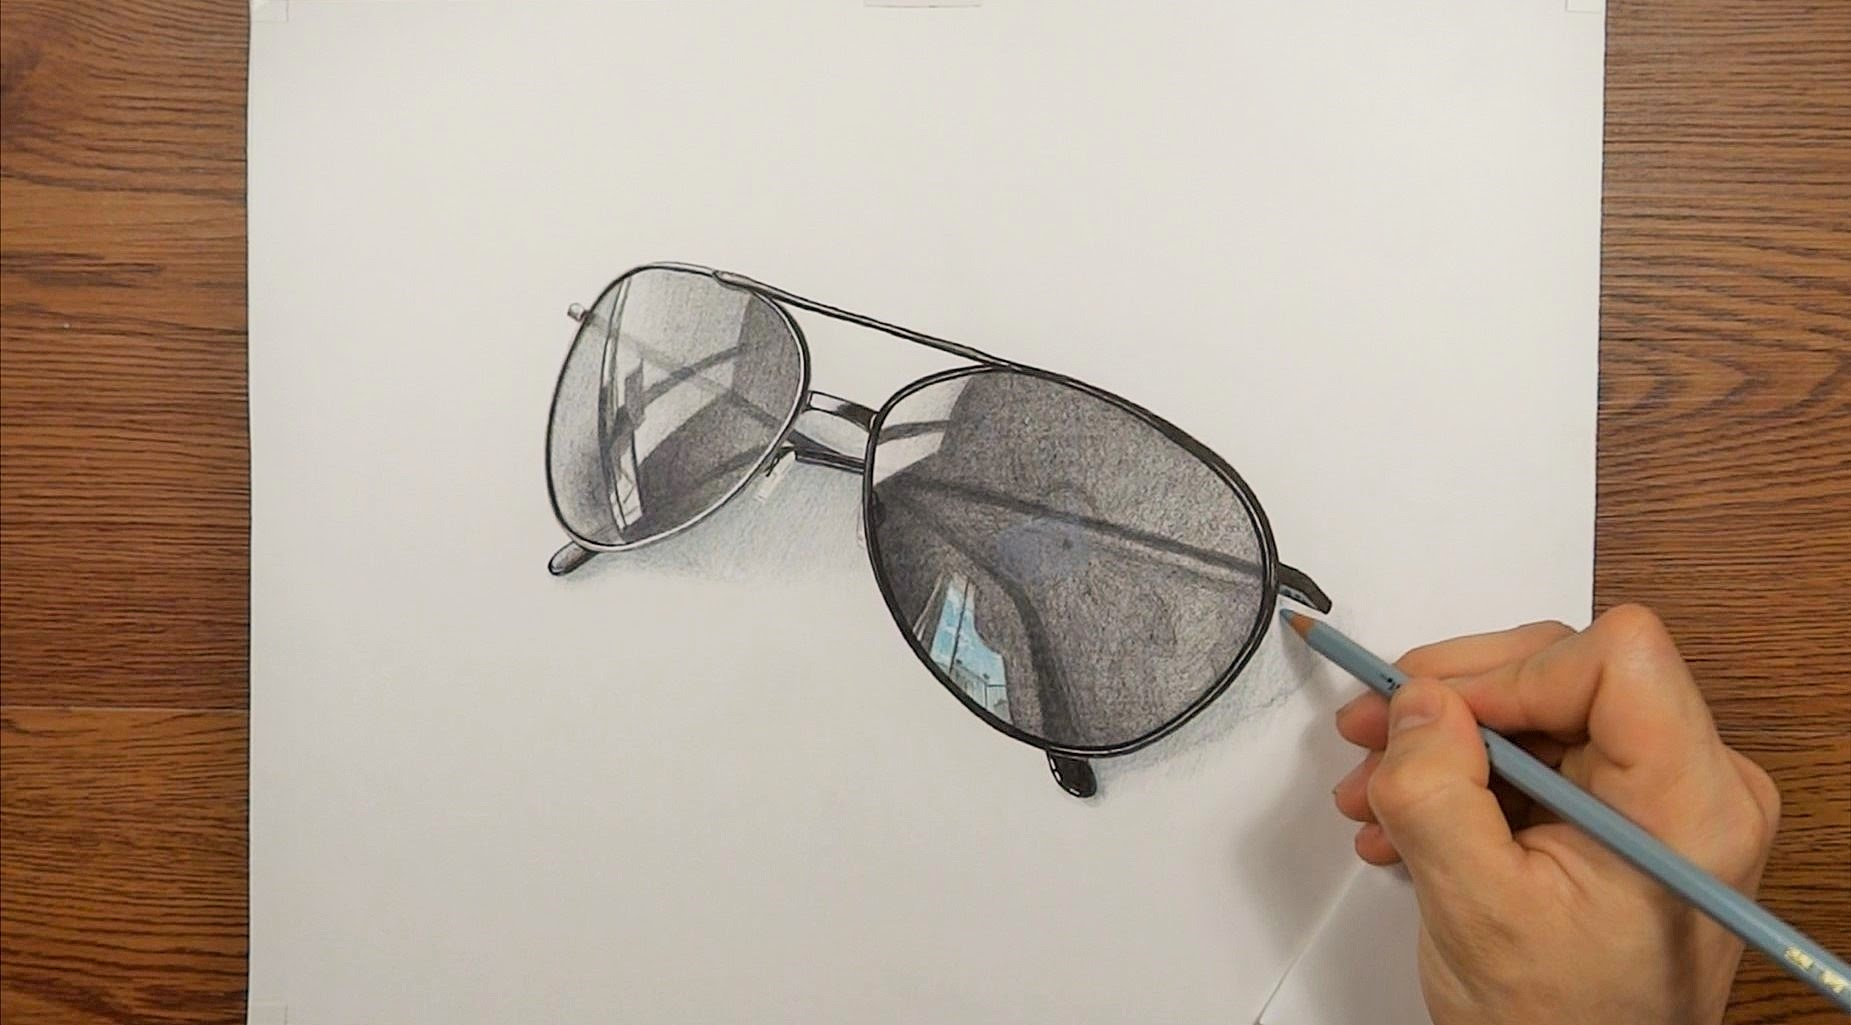 Drawn spectacles ART My Sunglasses Time 3D